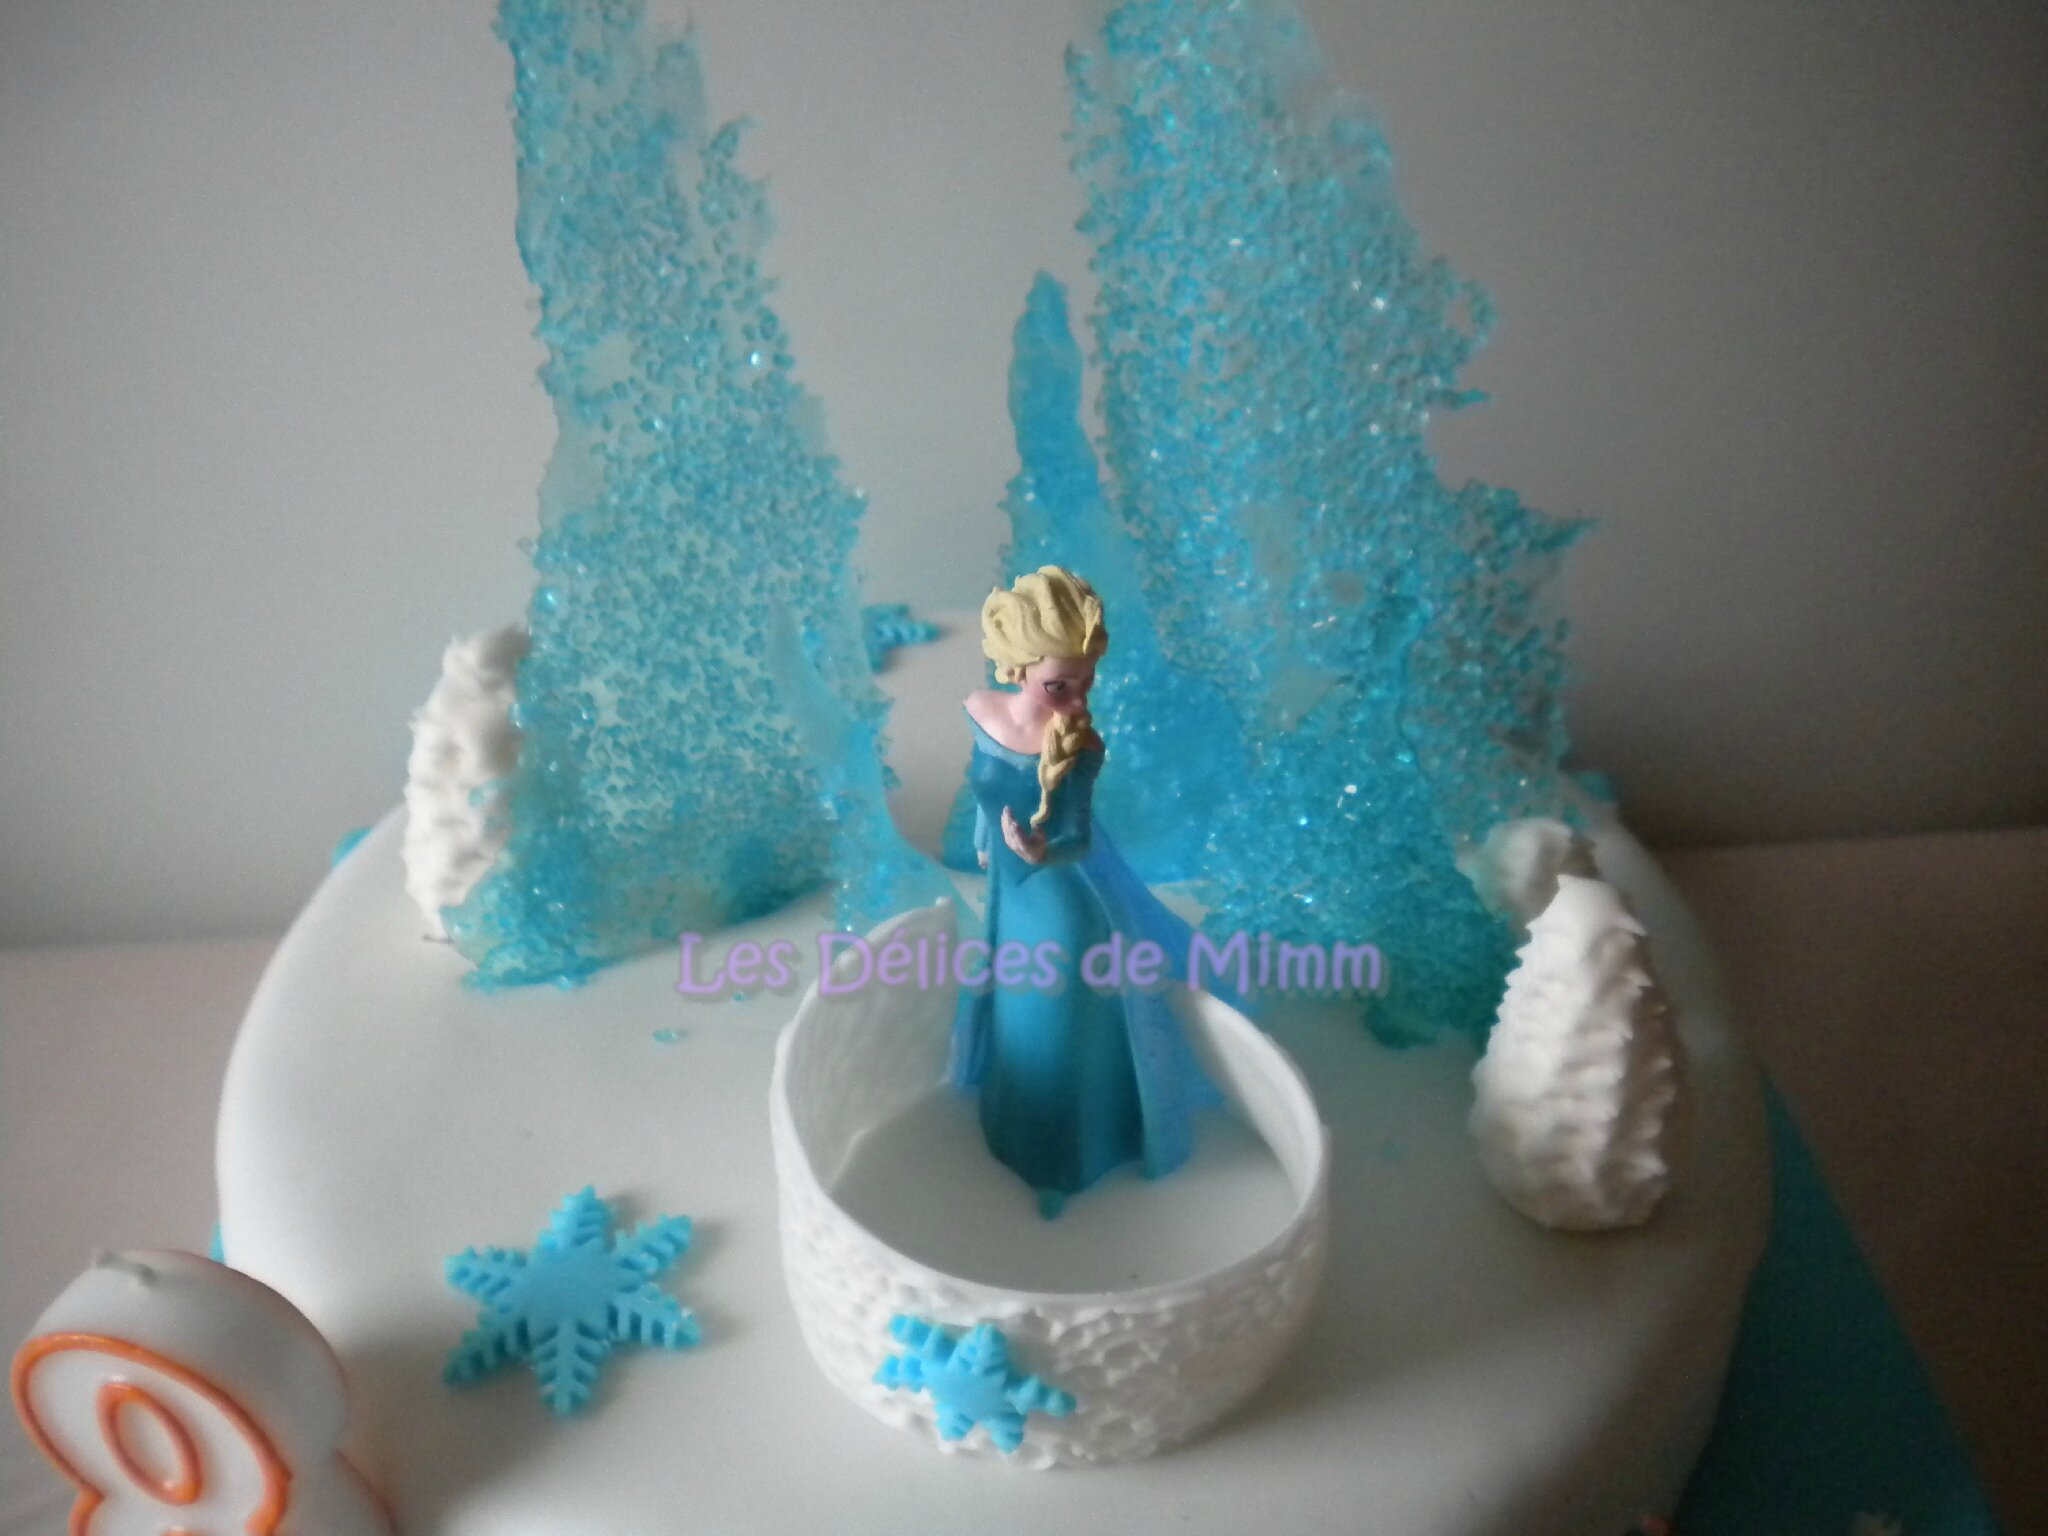 figurine reine des neiges pour gateau anniversaire. Black Bedroom Furniture Sets. Home Design Ideas